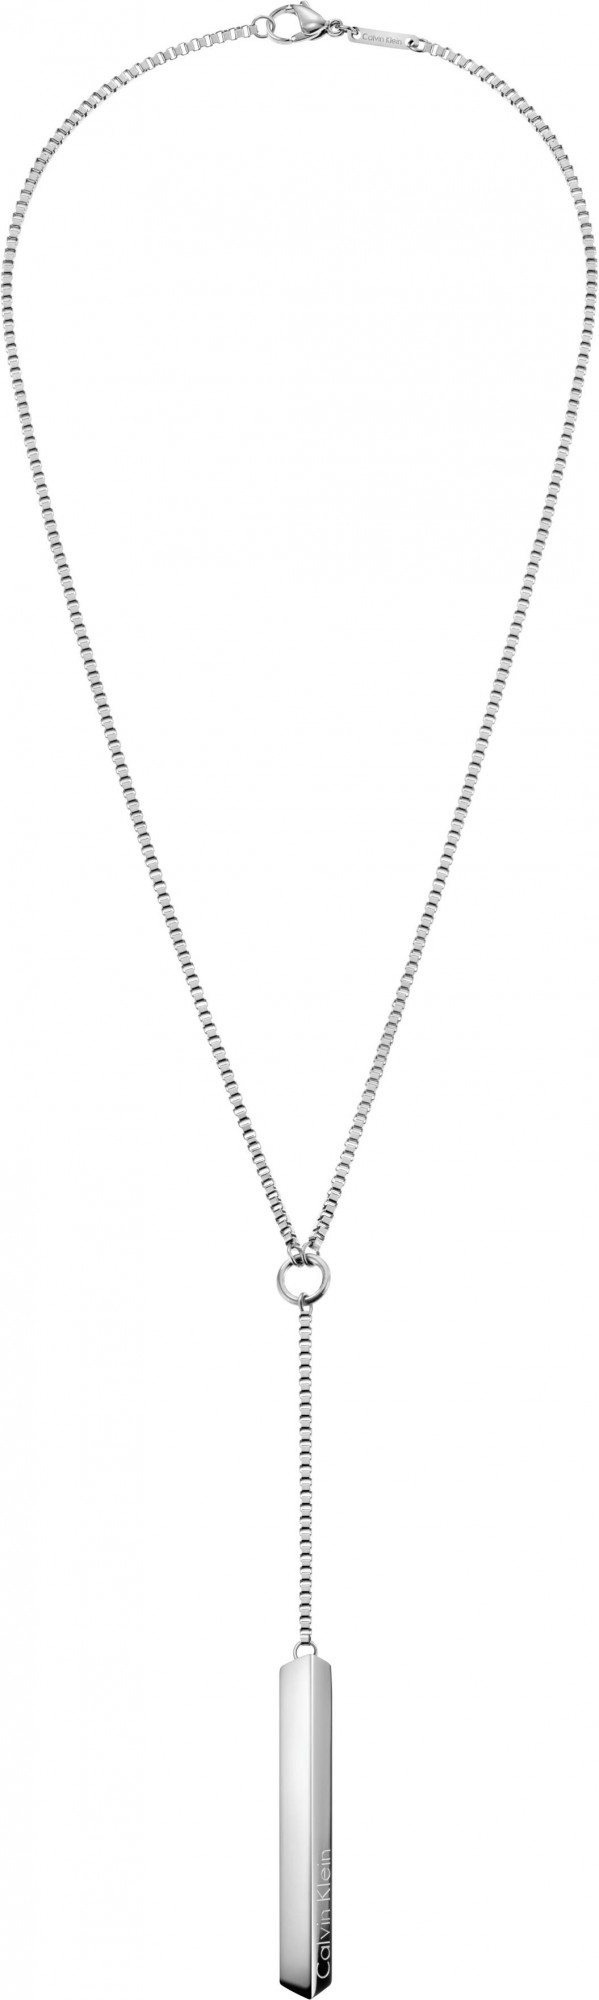 choker Calvin Klein Jewelry buy choker Calvin Klein Jewelry internet shop